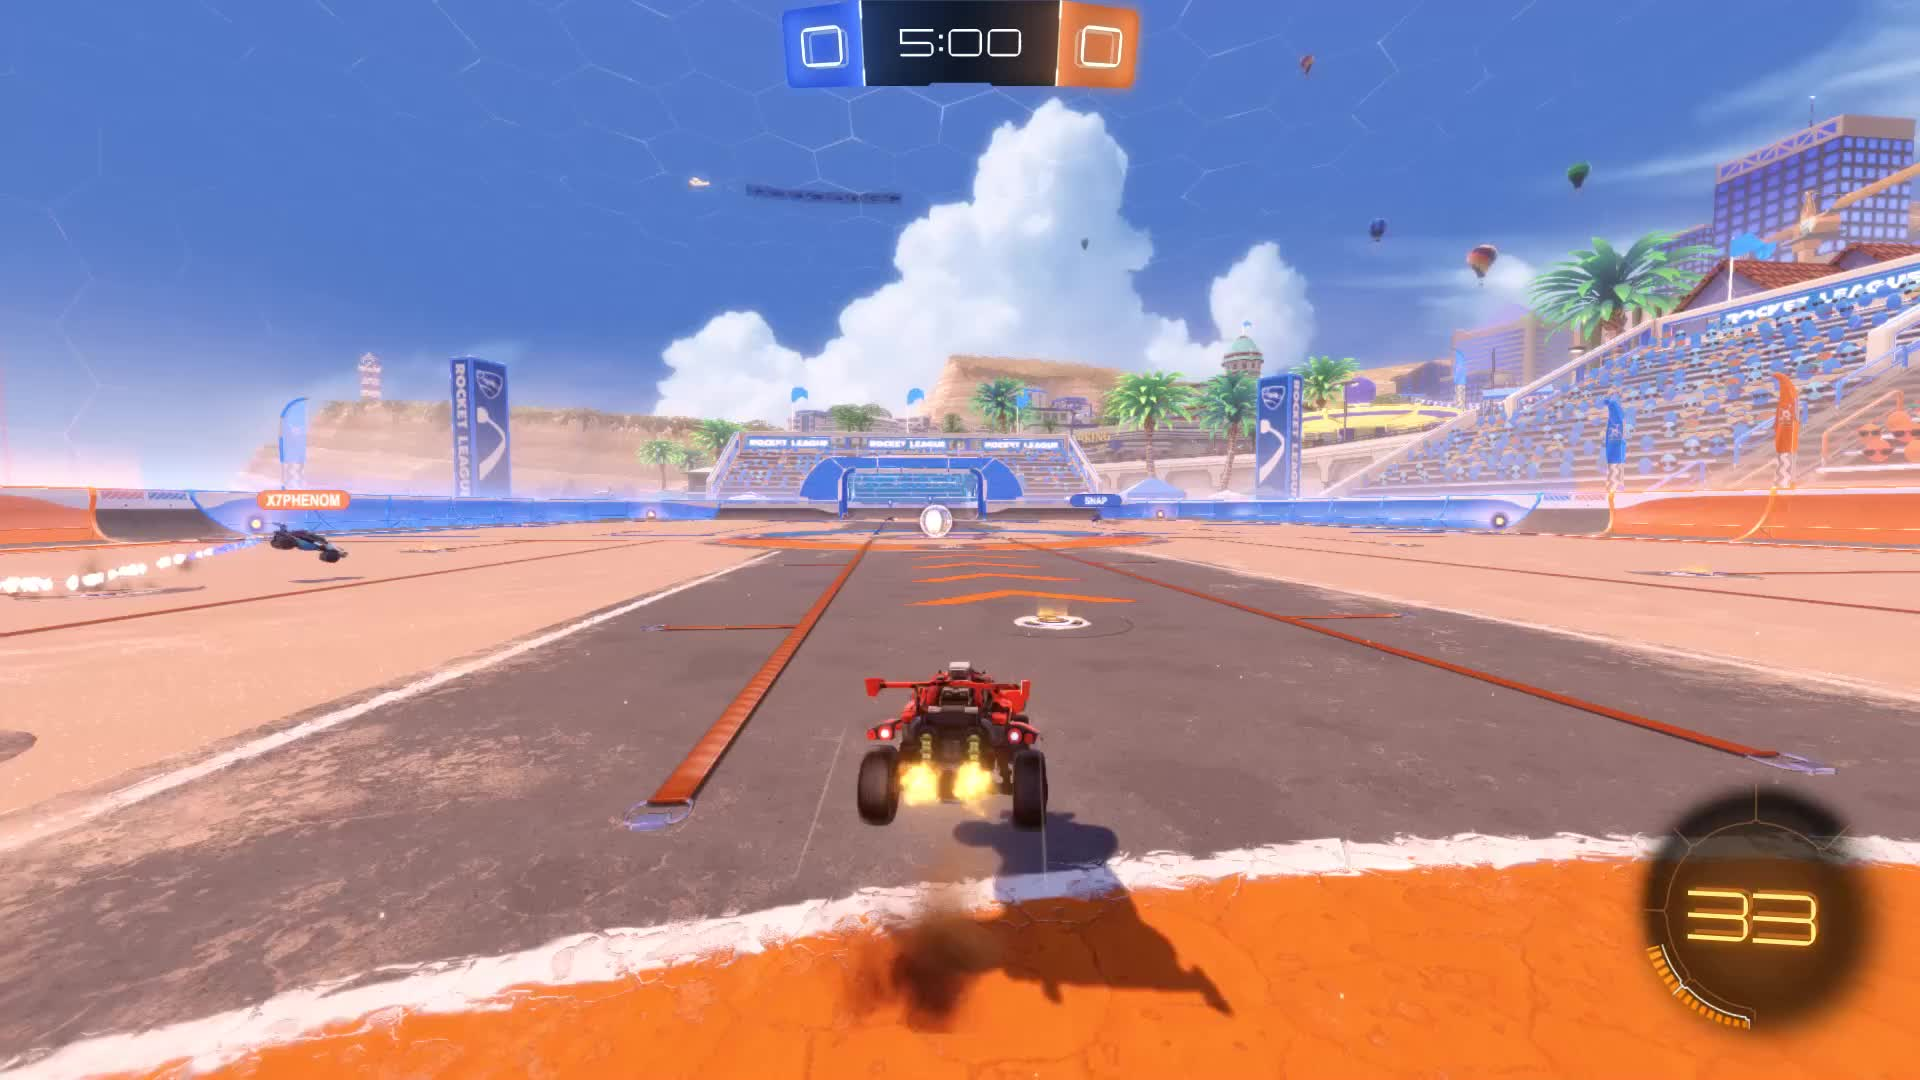 Gif Your Game, GifYourGame, Goal, Nyhx, Rocket League, RocketLeague, Goal 1: Nyhx GIFs